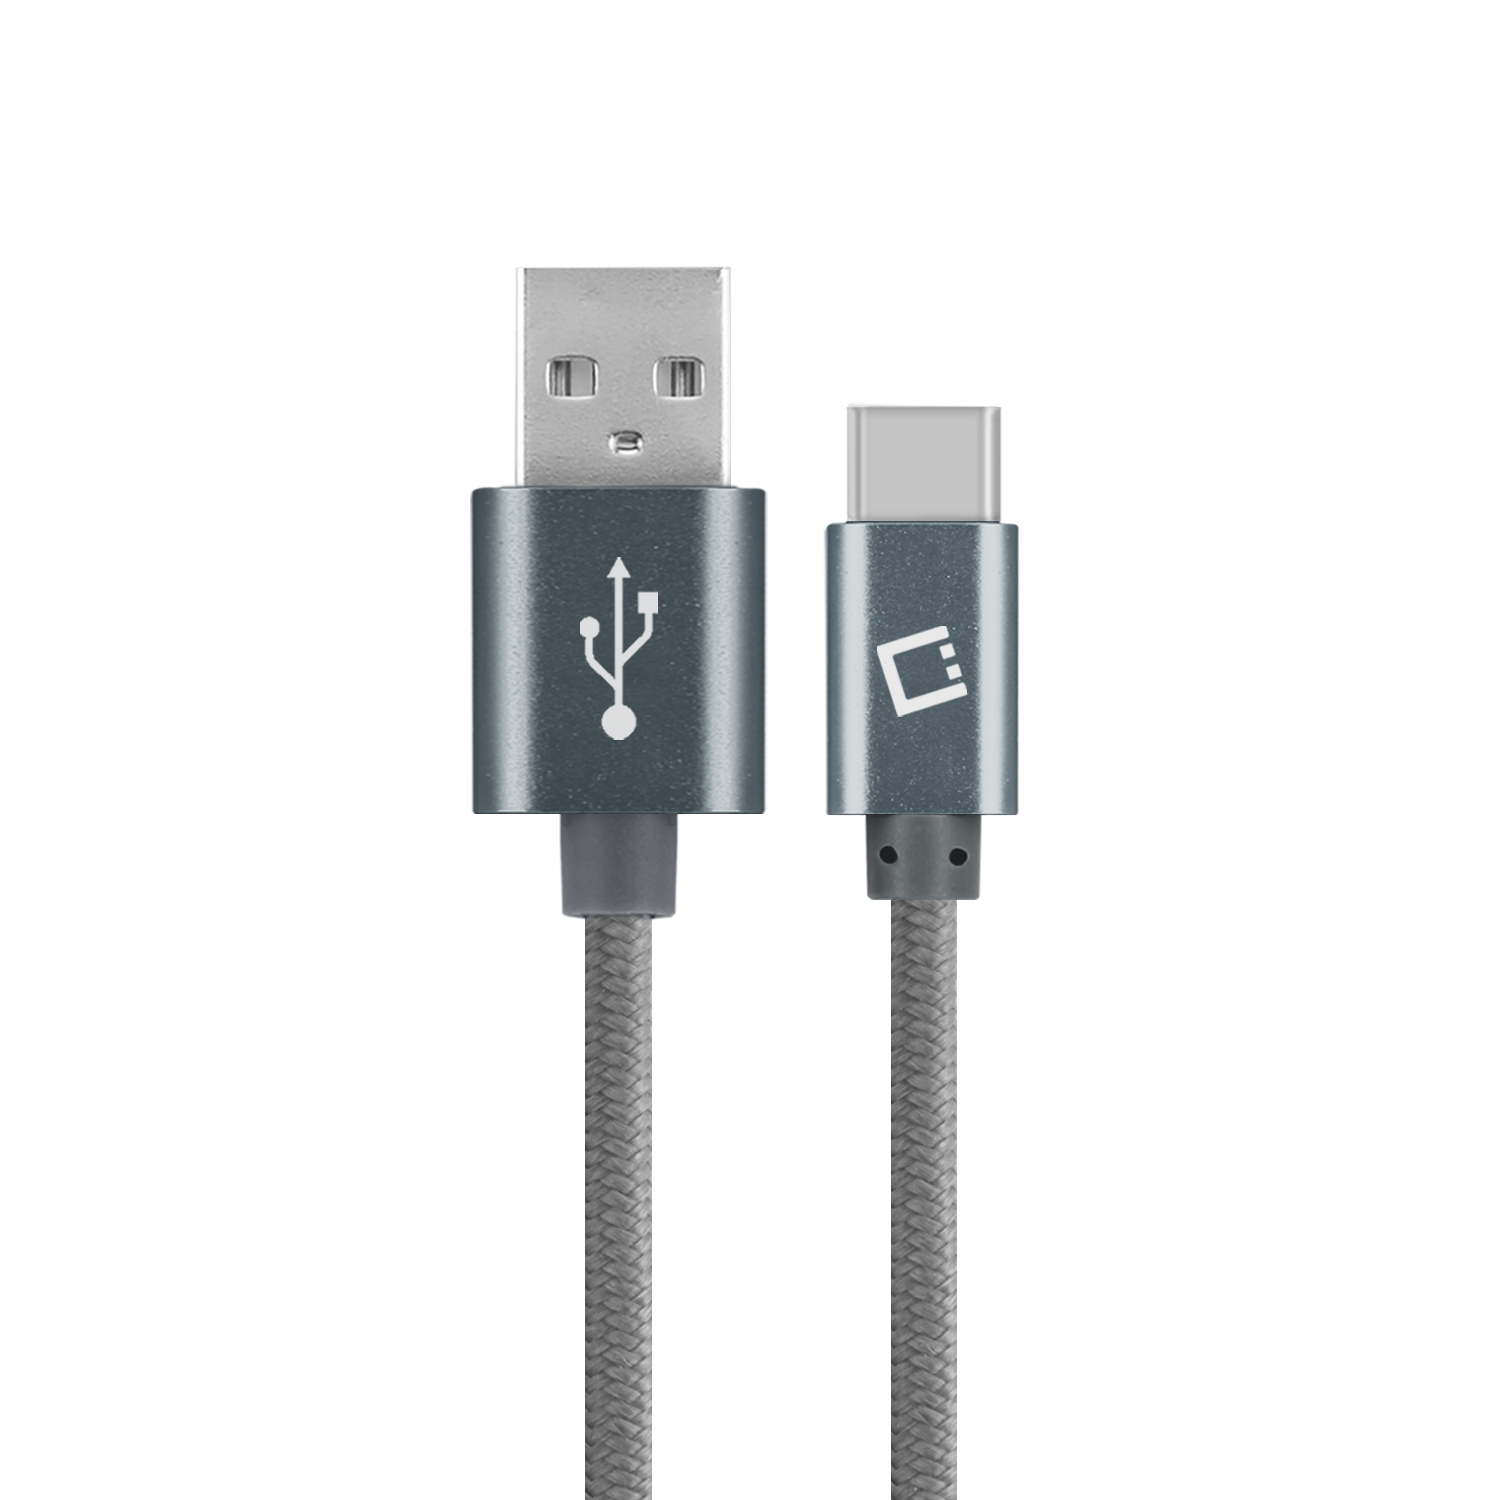 Sony Xperia XA2 Ultra USB Type-C To Type-A Braided Data Power Cable Grey 4ft Braided